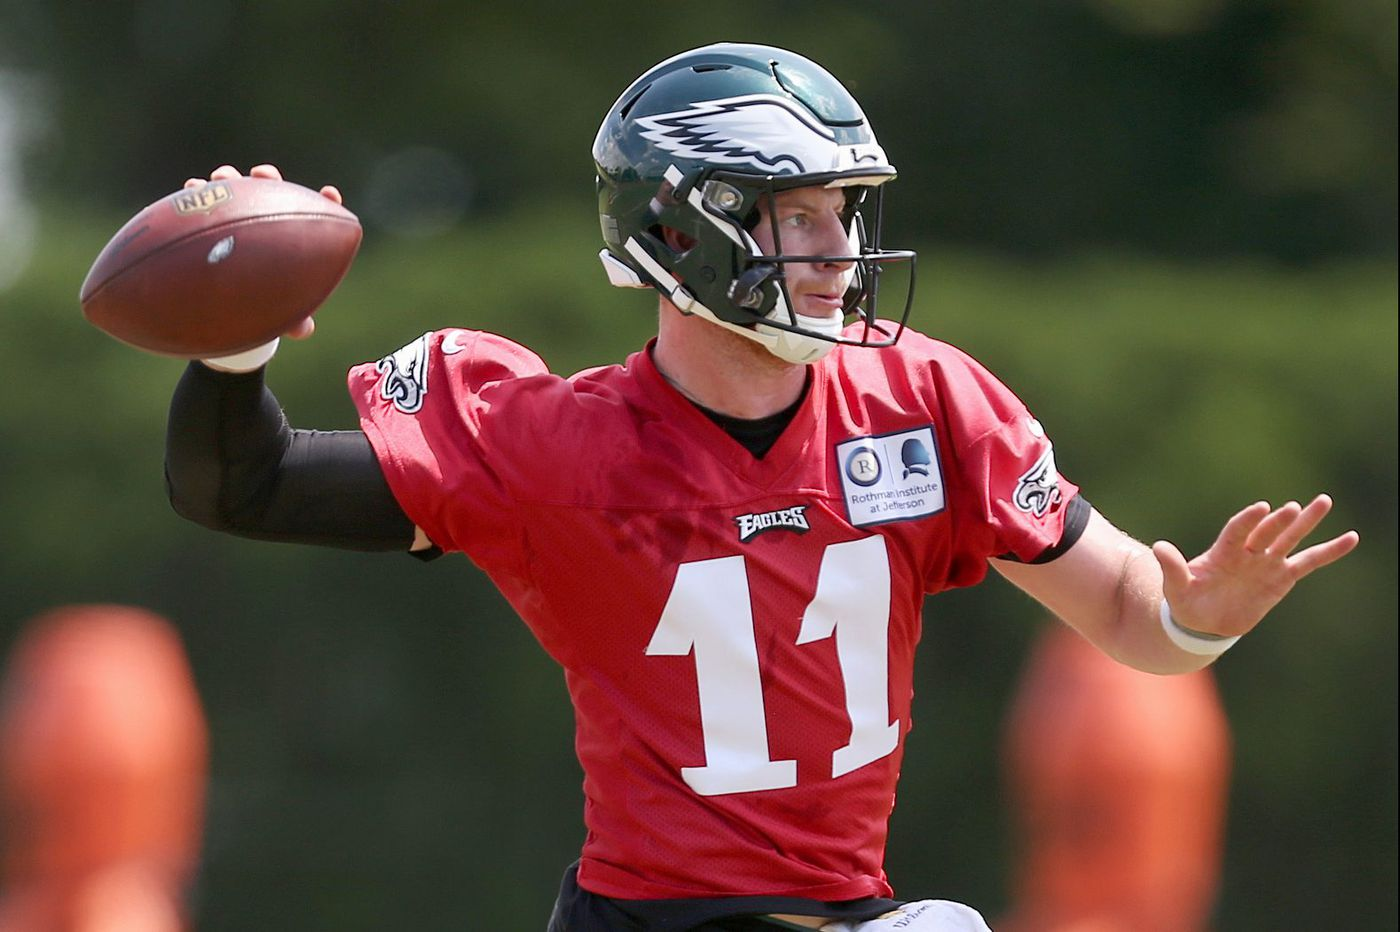 Eagles training camp preview: Carson Wentz's recovery, presence will be intriguing